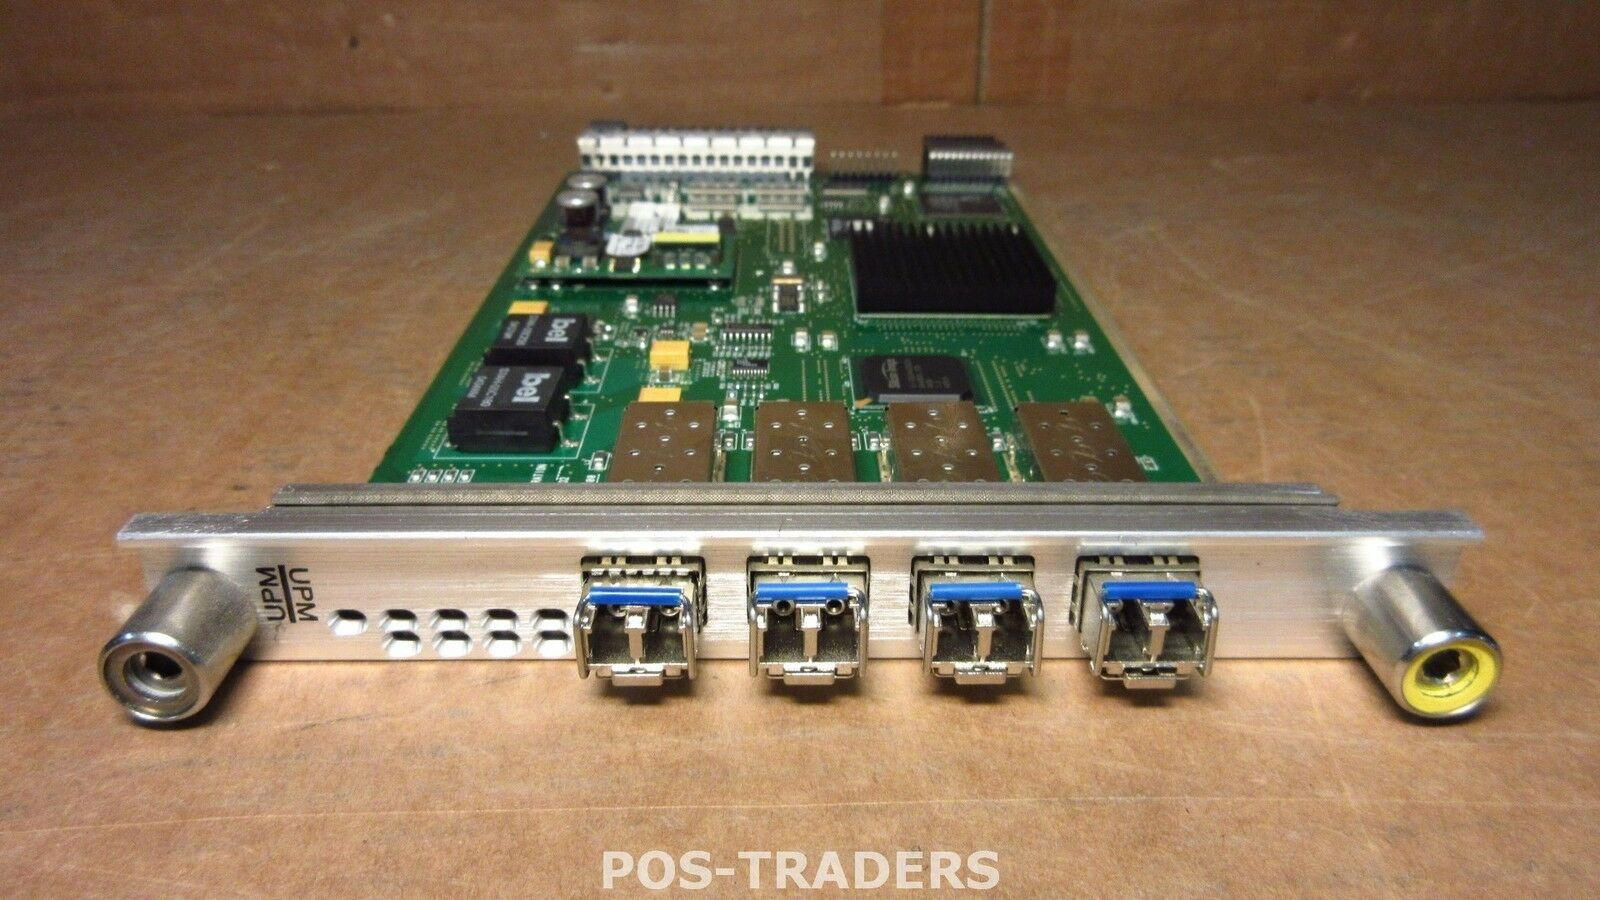 470 000474 105 Brocade 4 Port Switch Module 2gb Upm 4x Sfps From Sfp 57 1000117 01 8gb Up To 10gb 1 Von Siehe Mehr